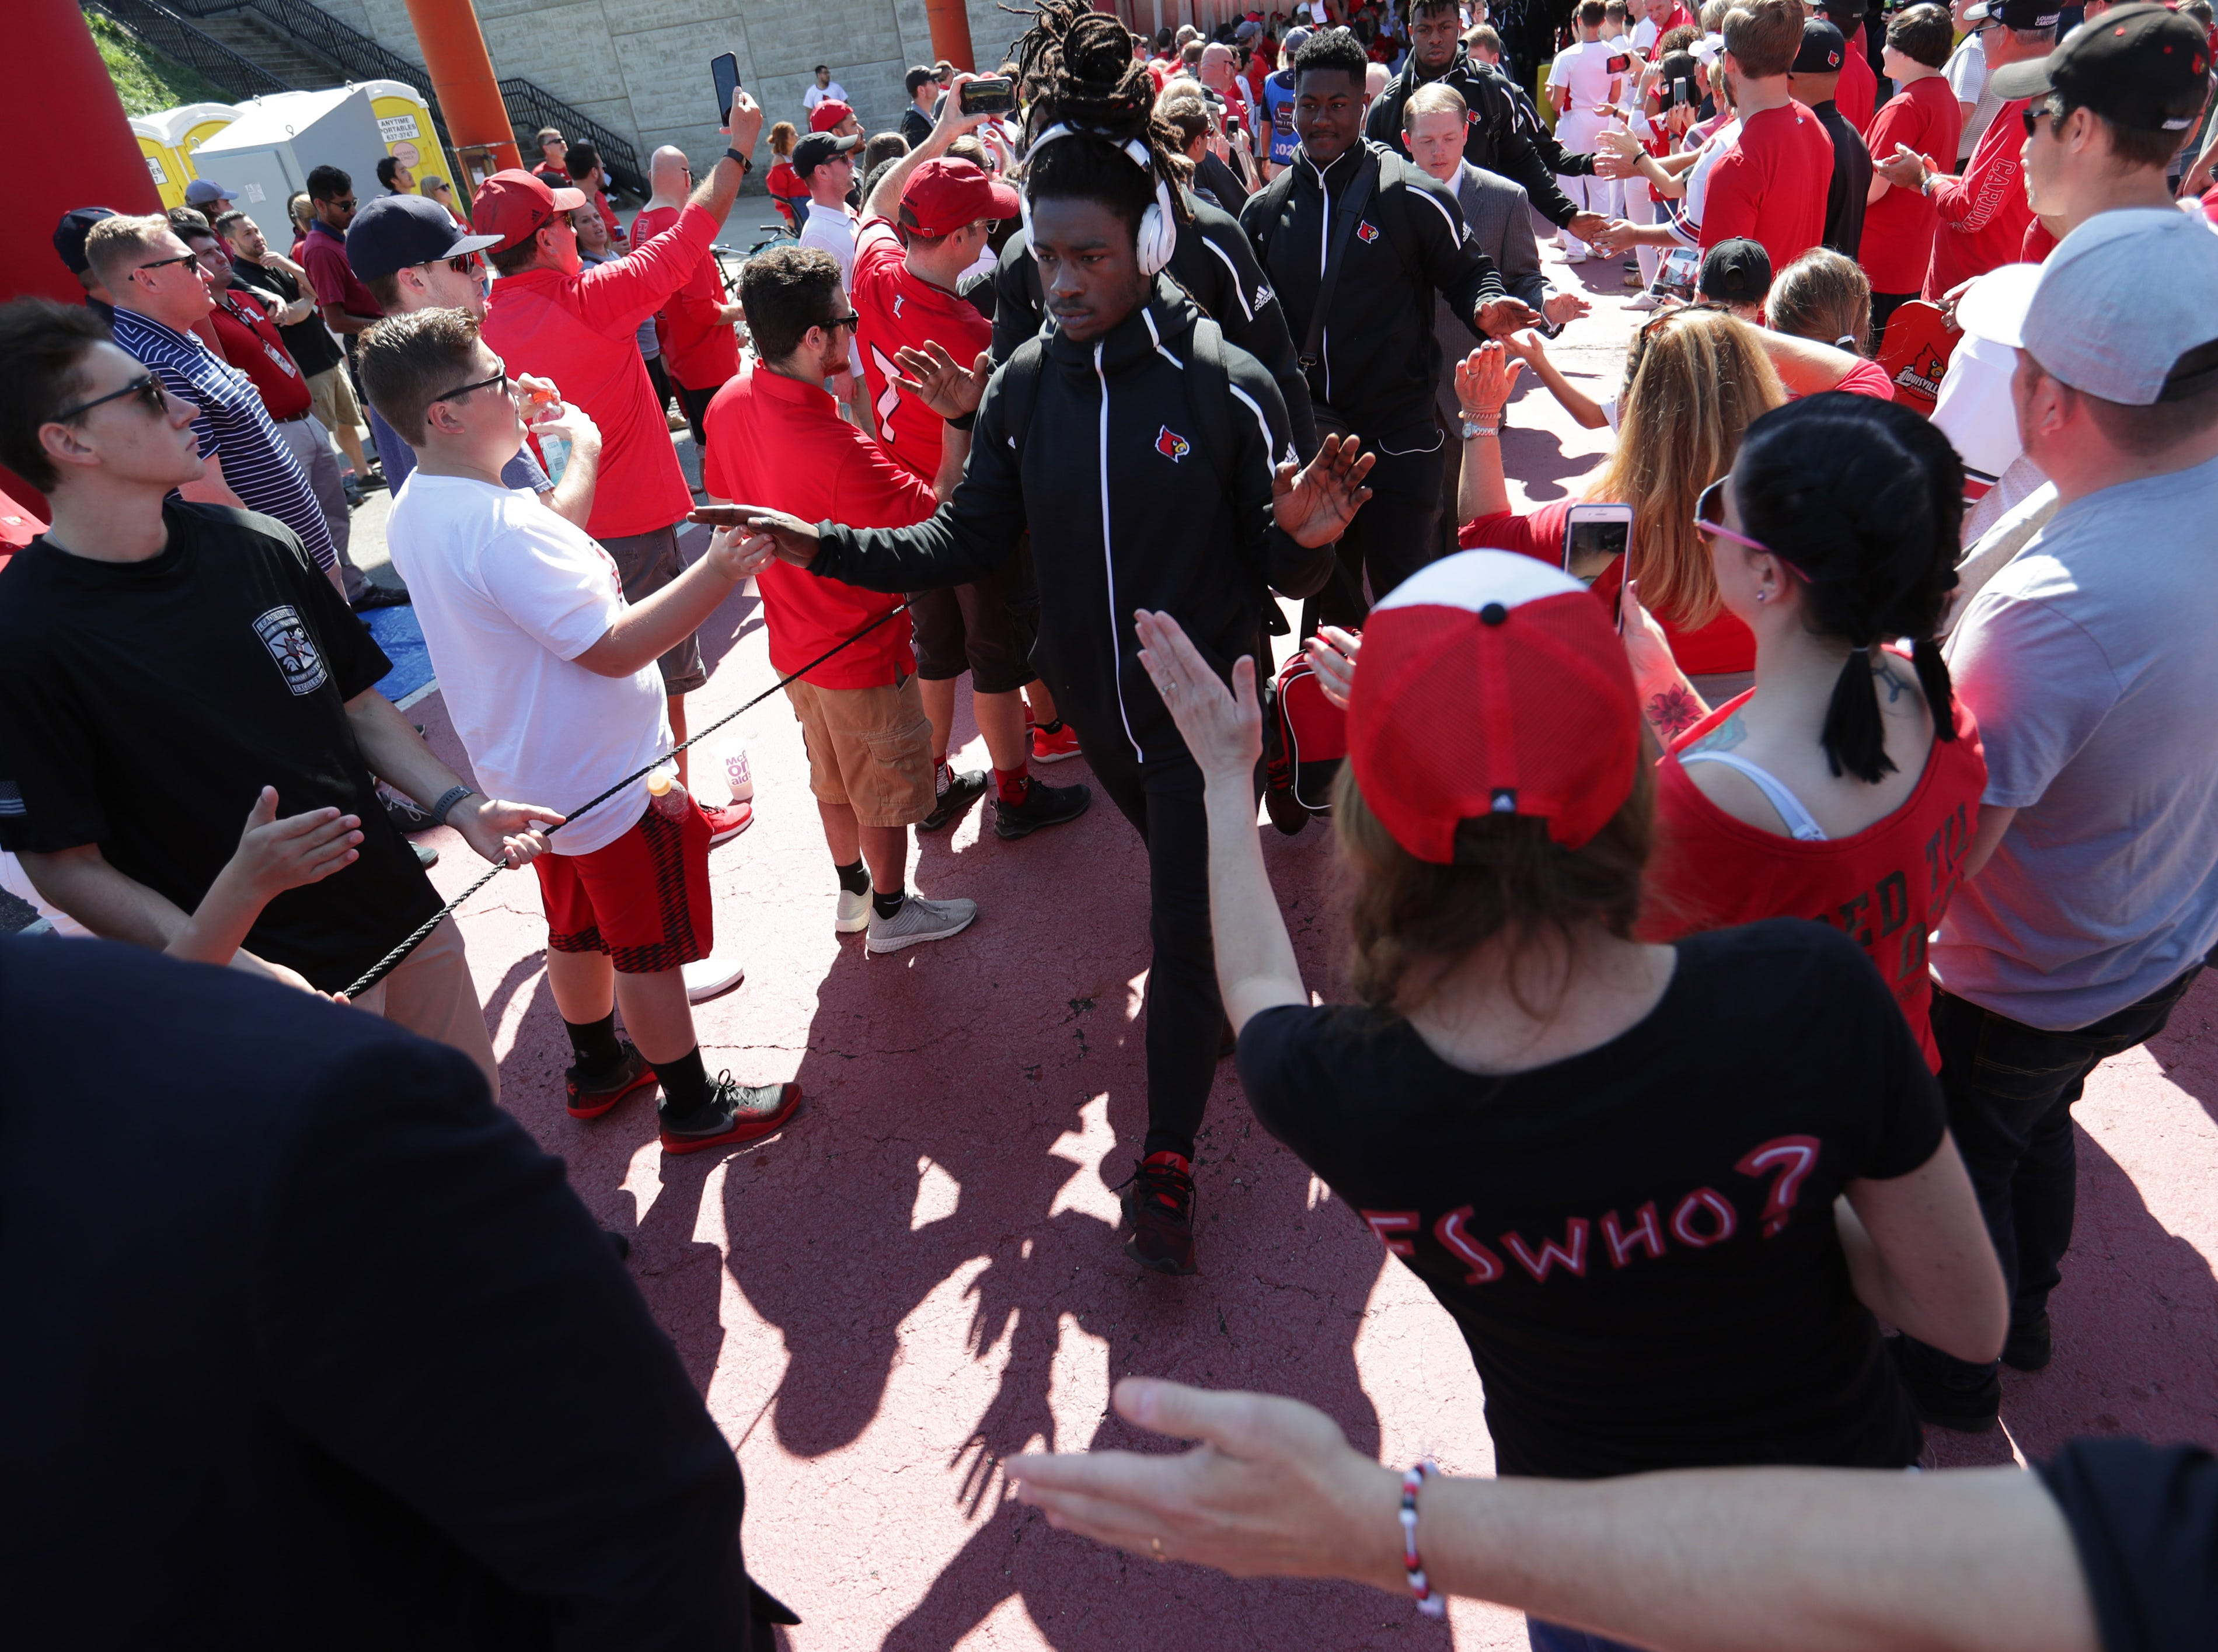 Fans reached out to University of Louisville players as they walk through the Card March. Sept. 29, 2018